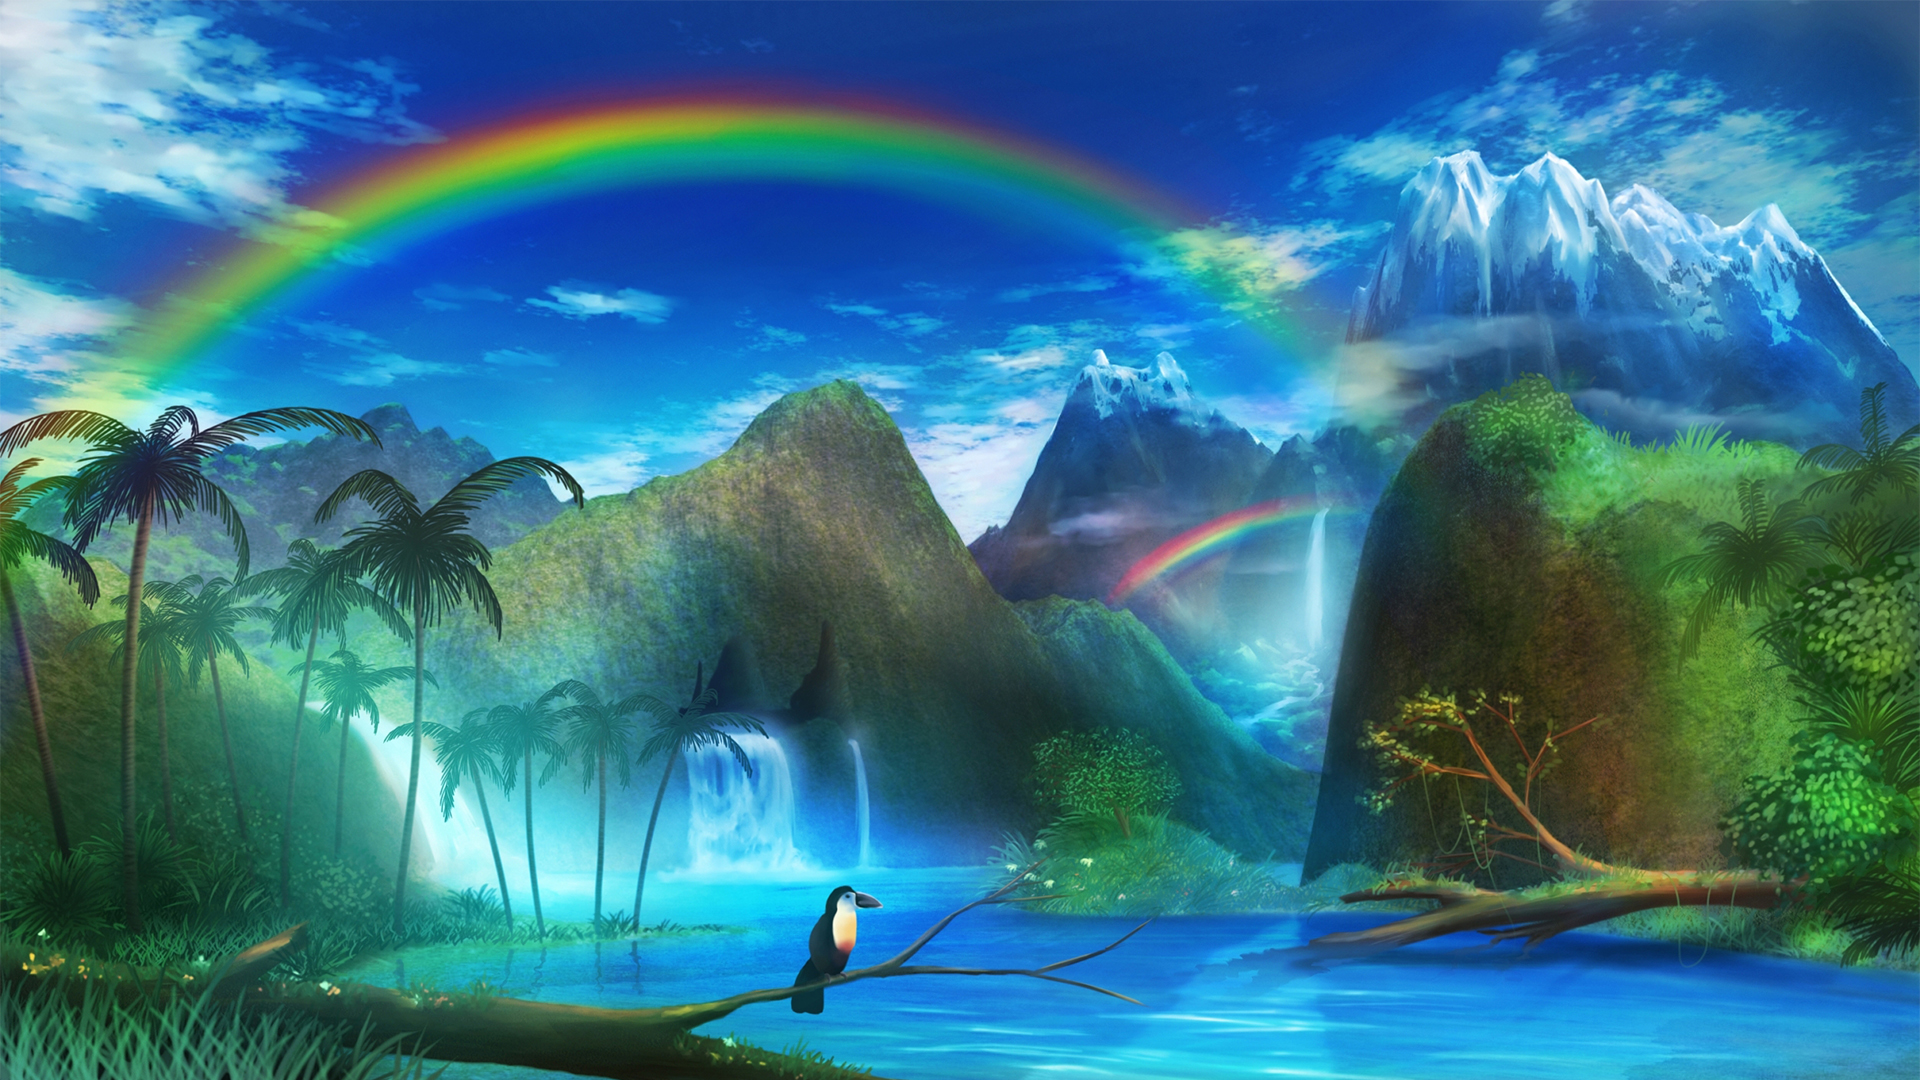 Anime 1920x1080 anime fantasy art colorful rainbows landscape birds